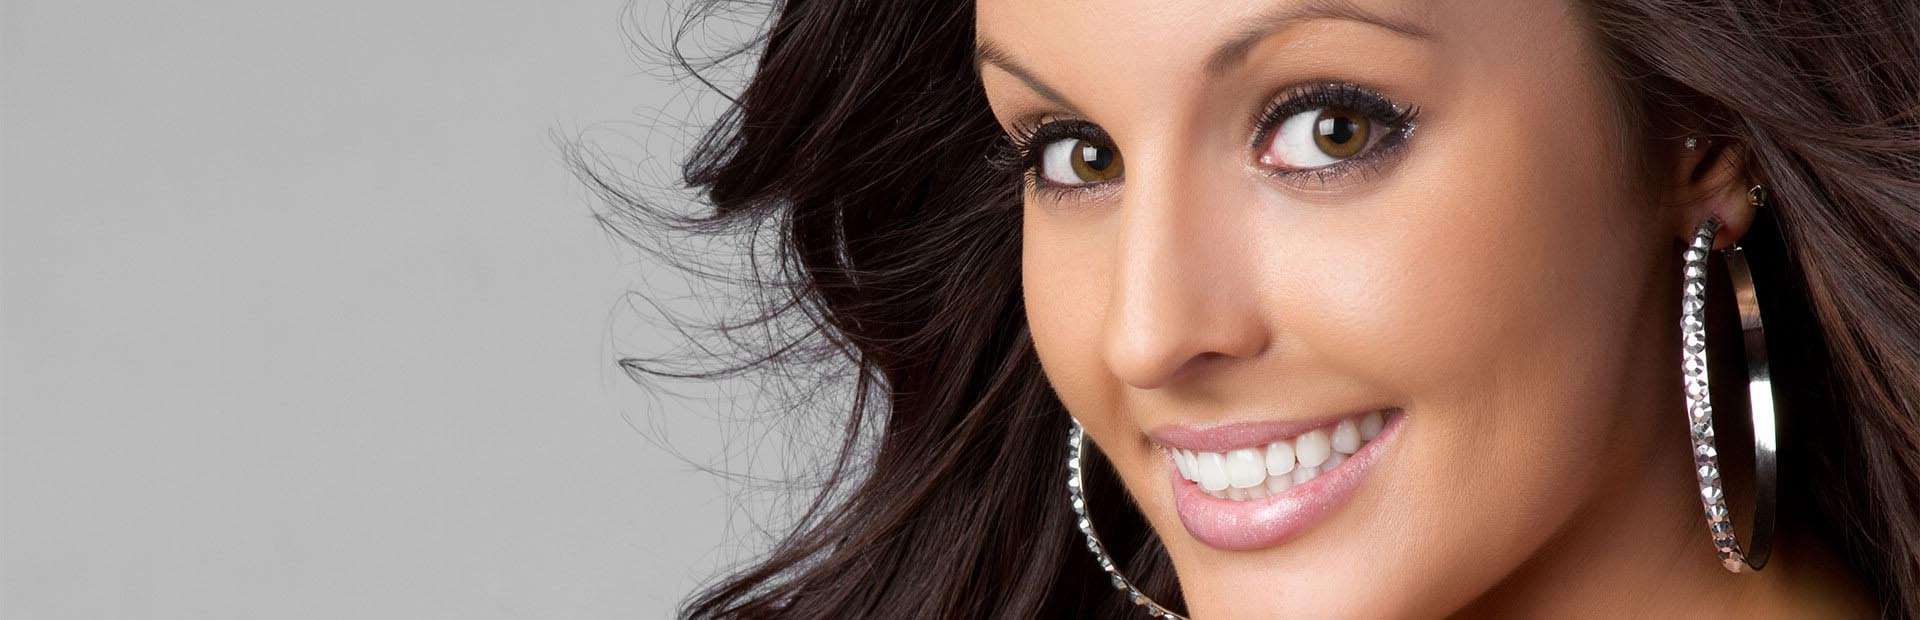 Dental Implants in Sugar Land, TX